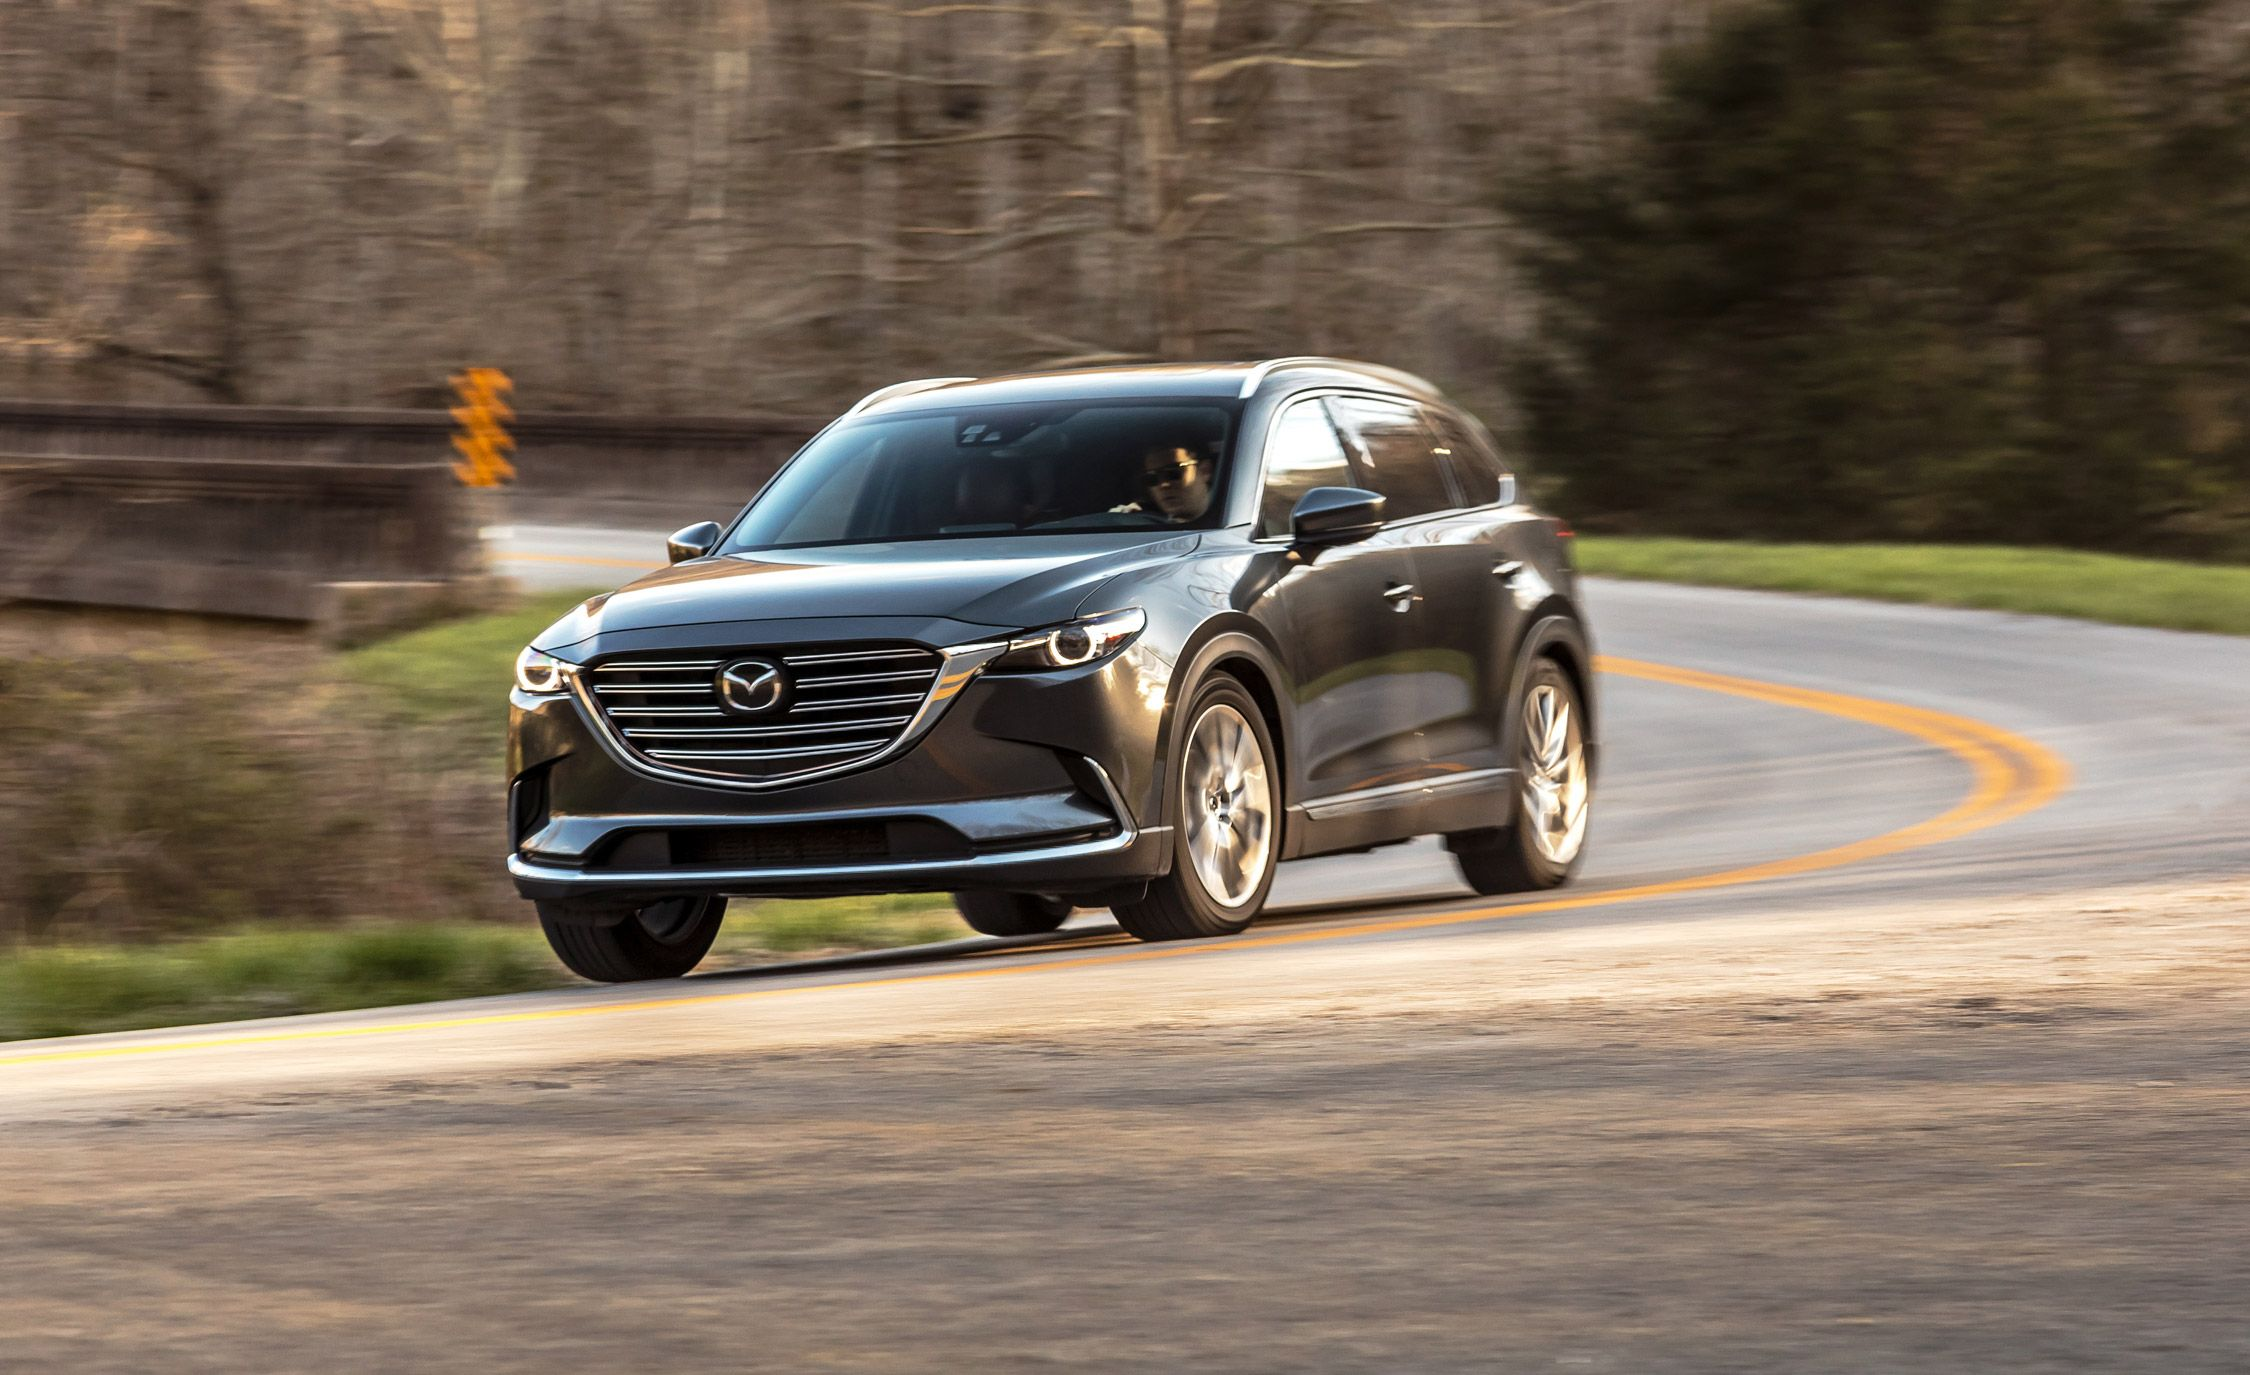 hight resolution of 2016 mazda cx 9 long term test wrap up review car and driverimage st car and driver where is the fuel filter